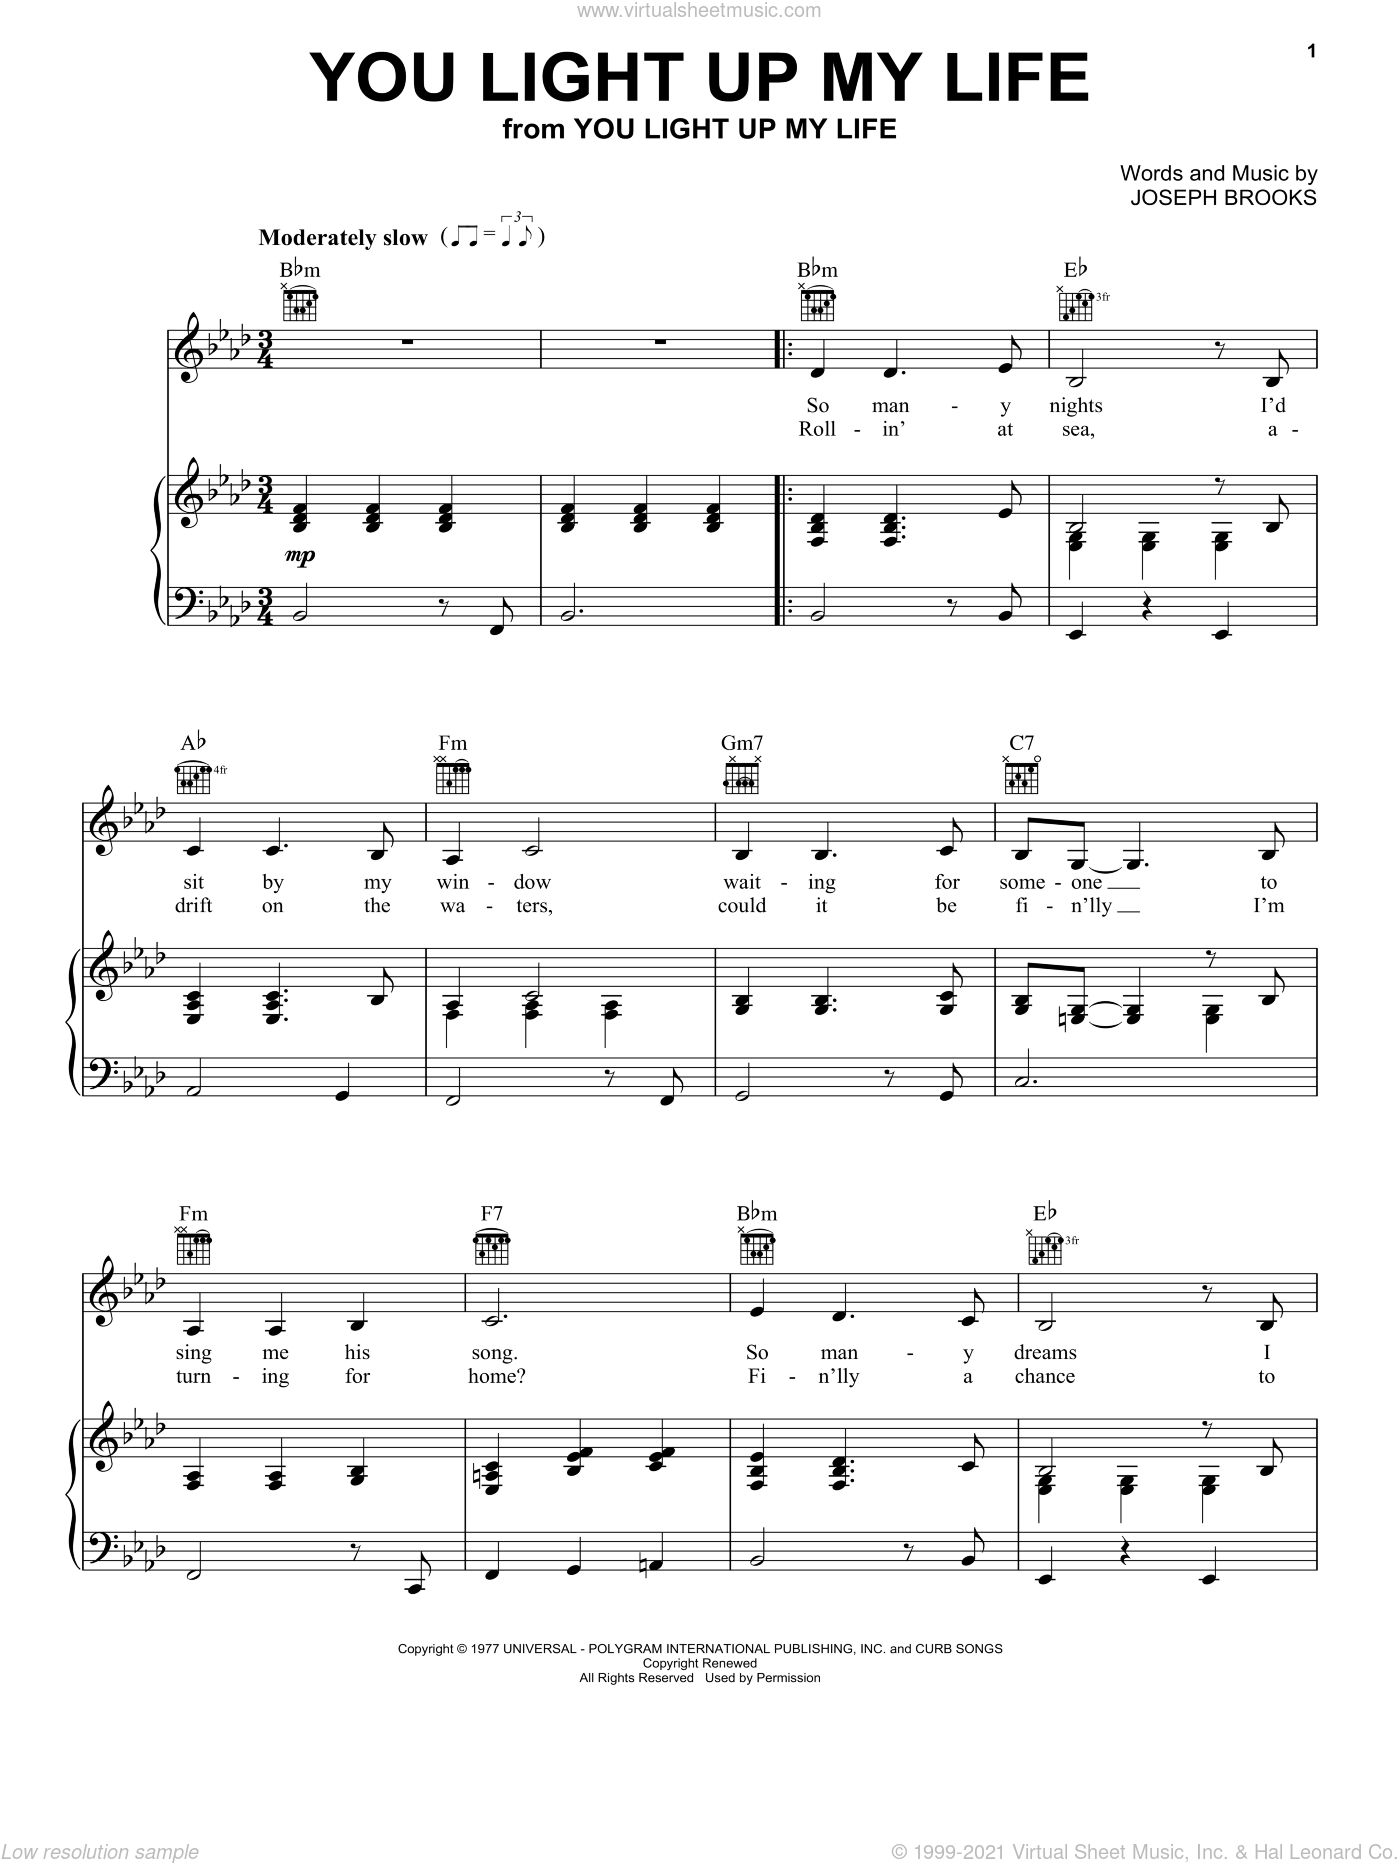 You Light Up My Life sheet music for voice, piano or guitar by Debby Boone, Kenny Rogers, LeAnn Rimes and Joseph Brooks, intermediate. Score Image Preview.